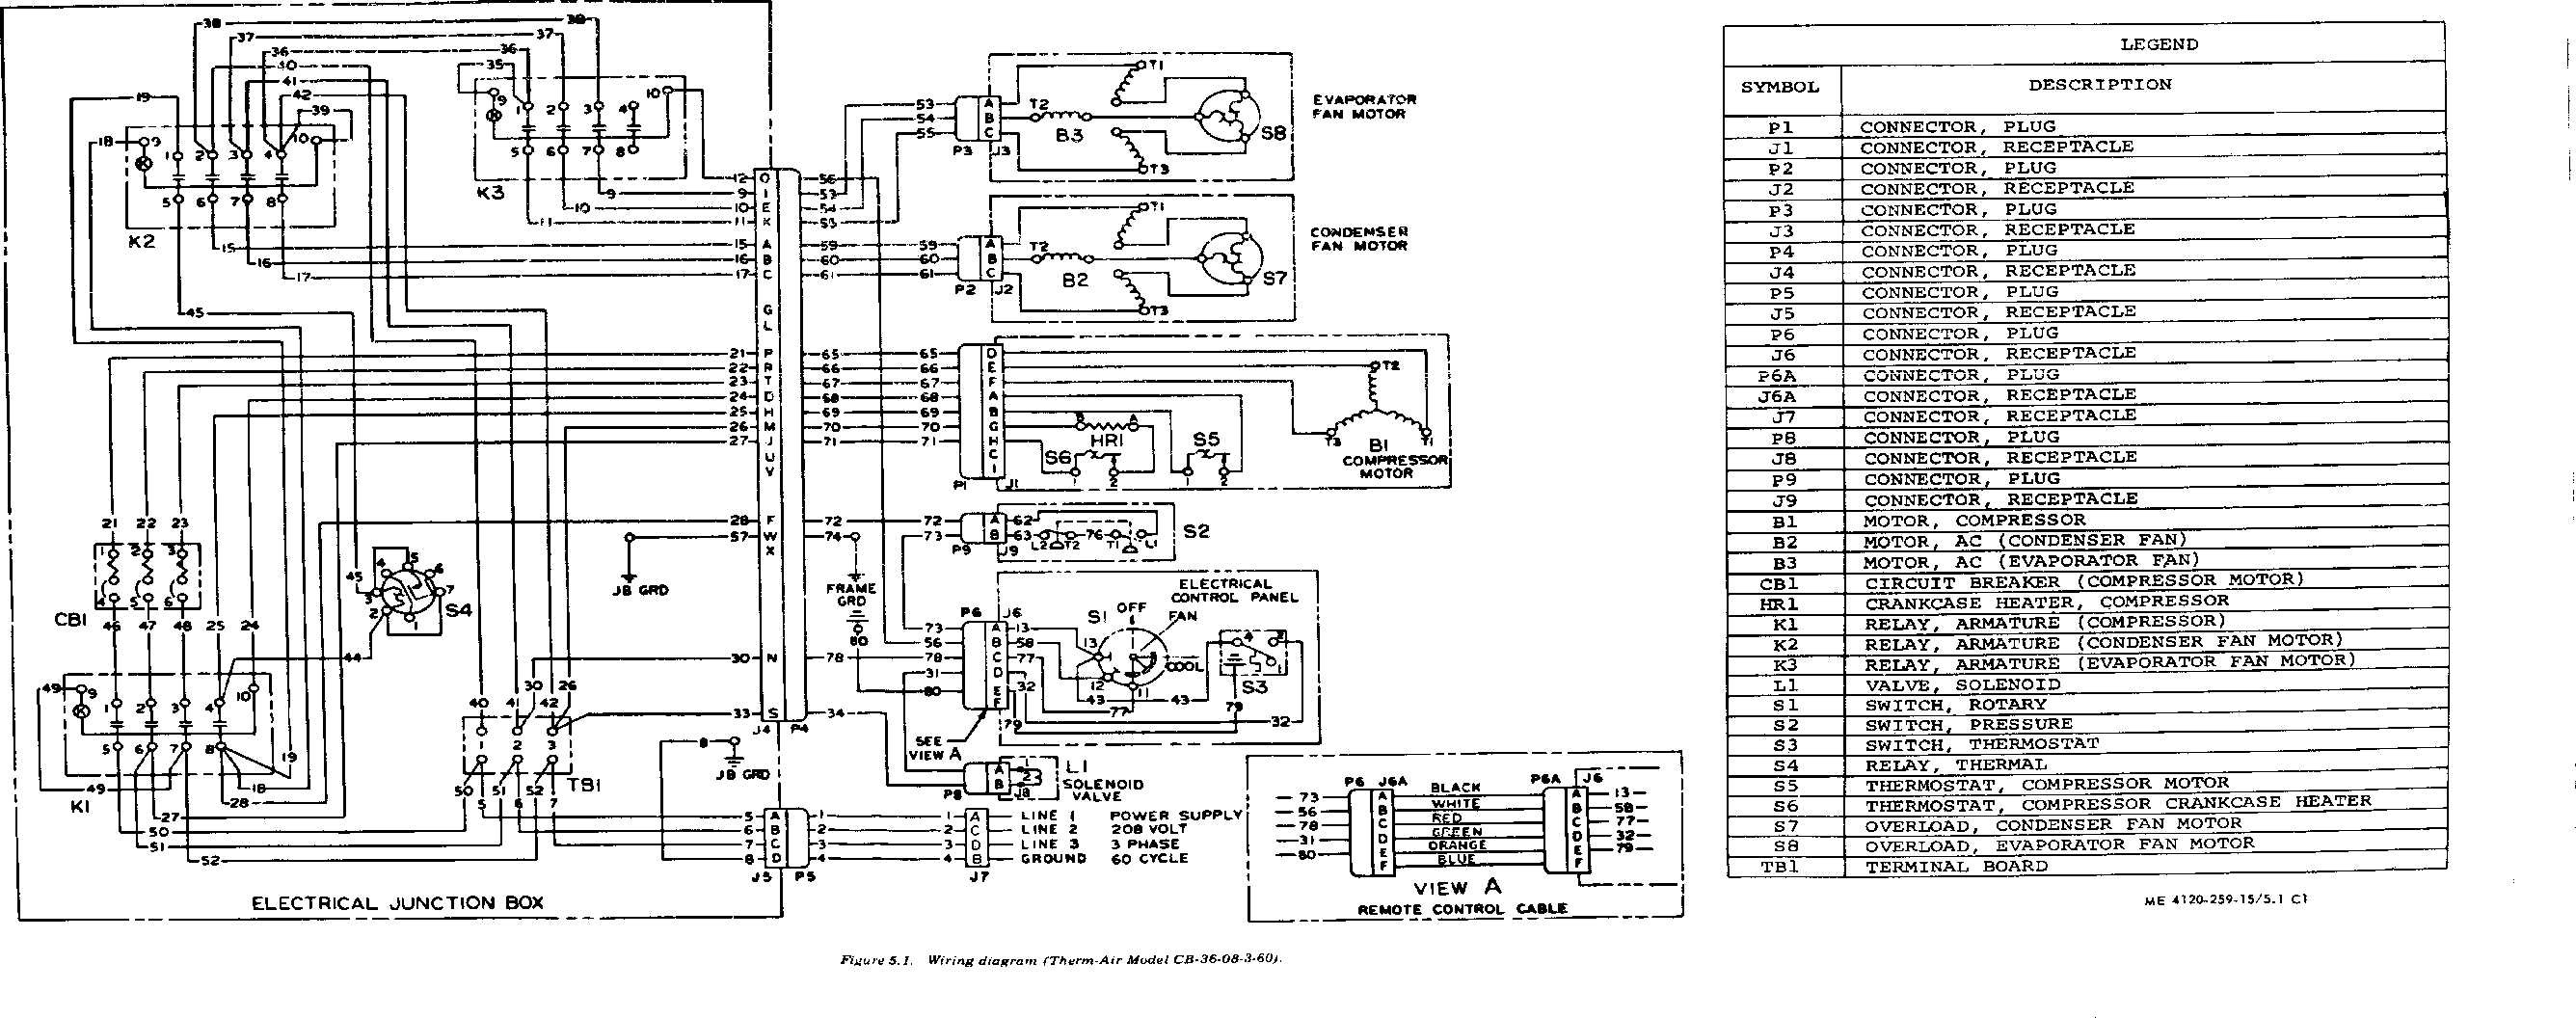 Trane Heat Pump Xl16i Wiring Diagram Library Jeep Cj5 Harnesses Jcwhitney Payne Thermostatng Package Unit